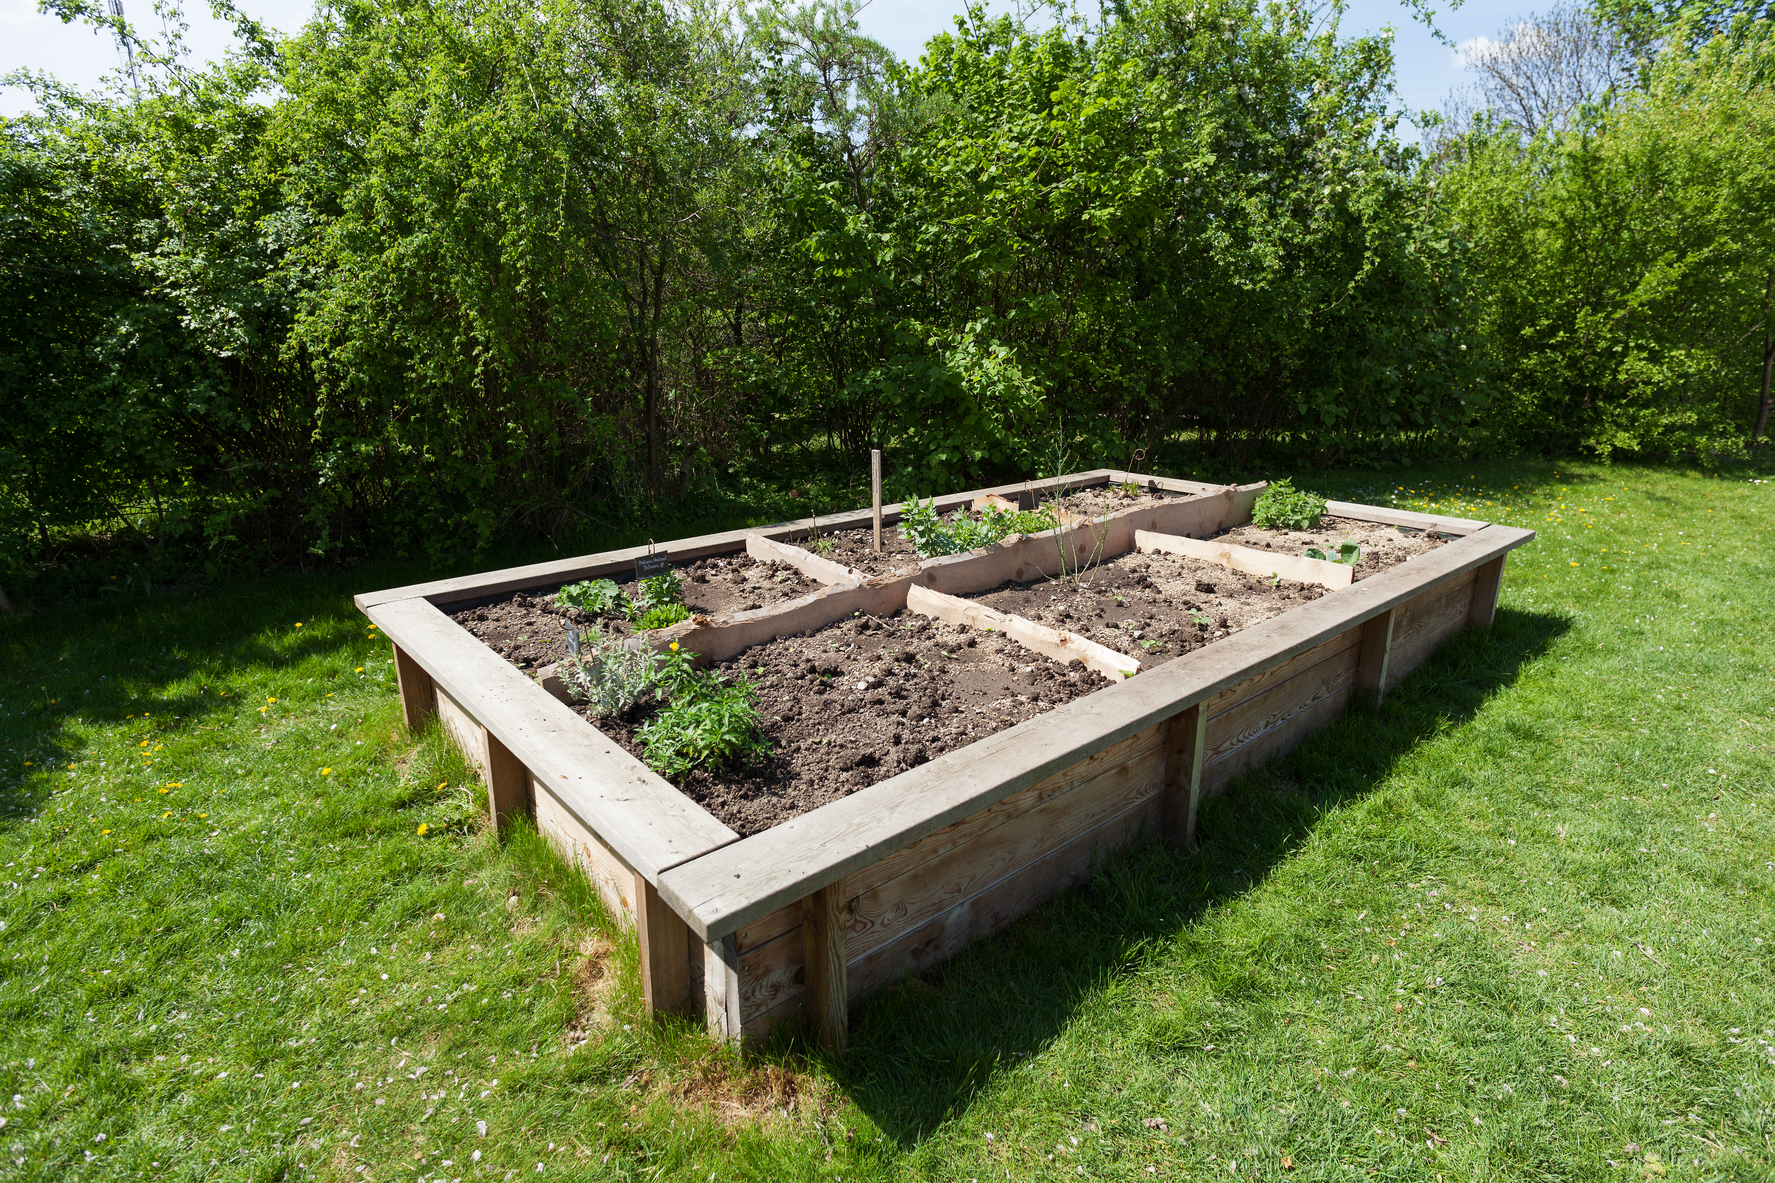 Plant Bed How To Build Raised Garden Beds Tips For Raised Bed